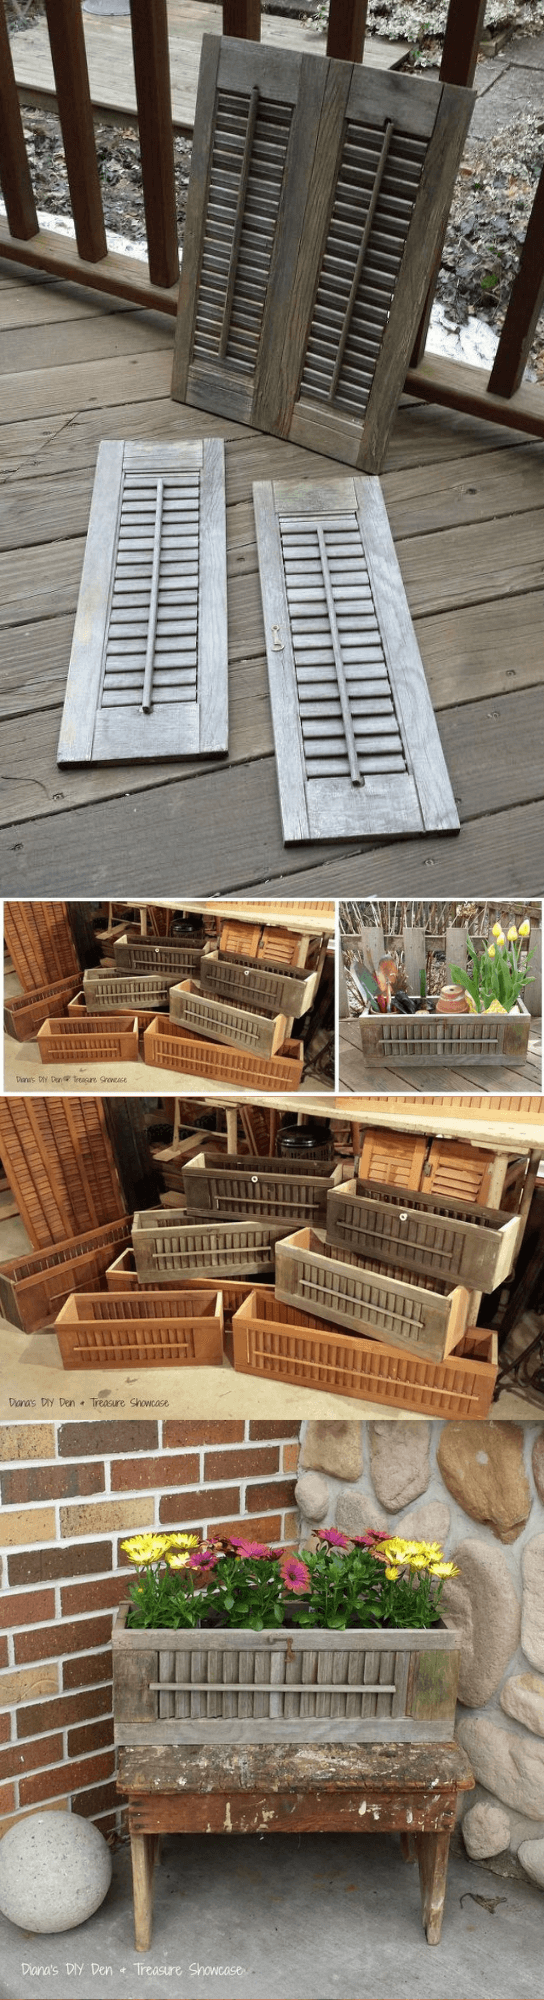 Old Shutter Outdoor Decor Ideas Repurposed Shutter Planter Boxes